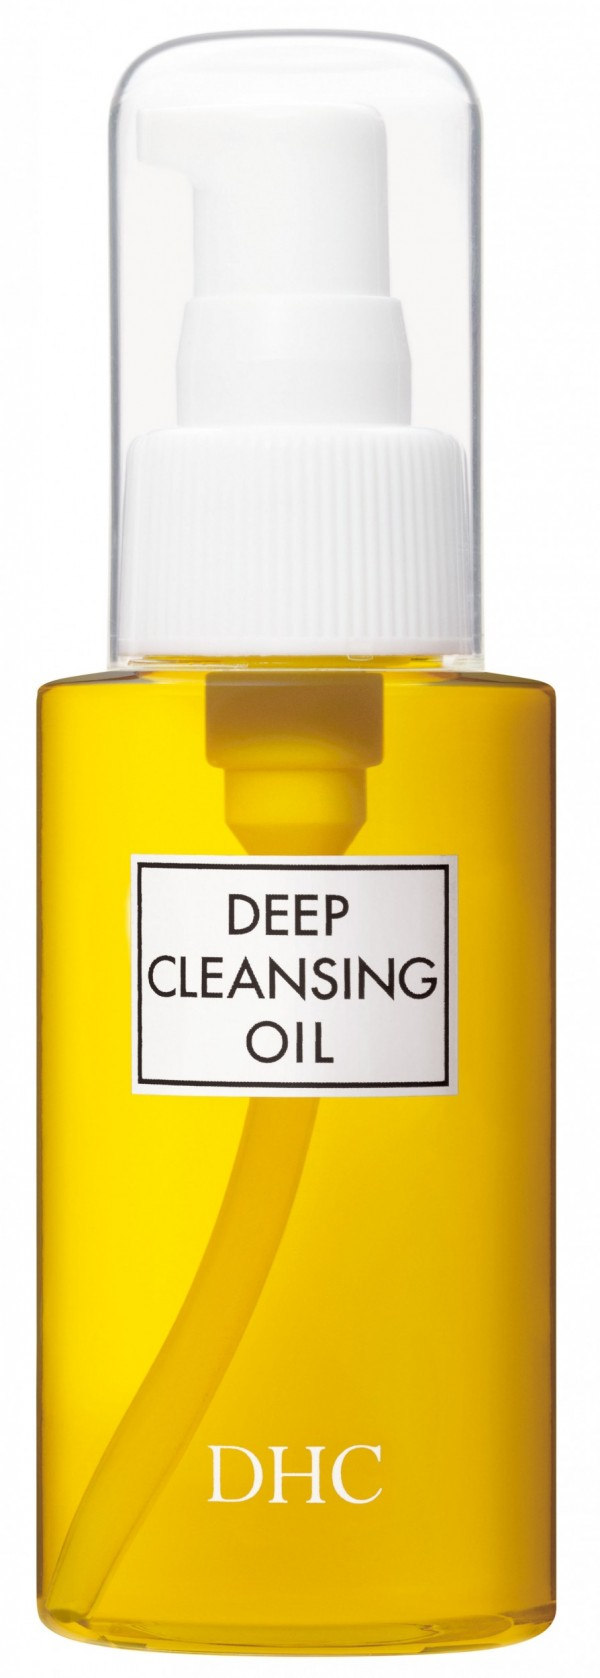 DHC Deep Cleansing Oil (SS) 70 ml.